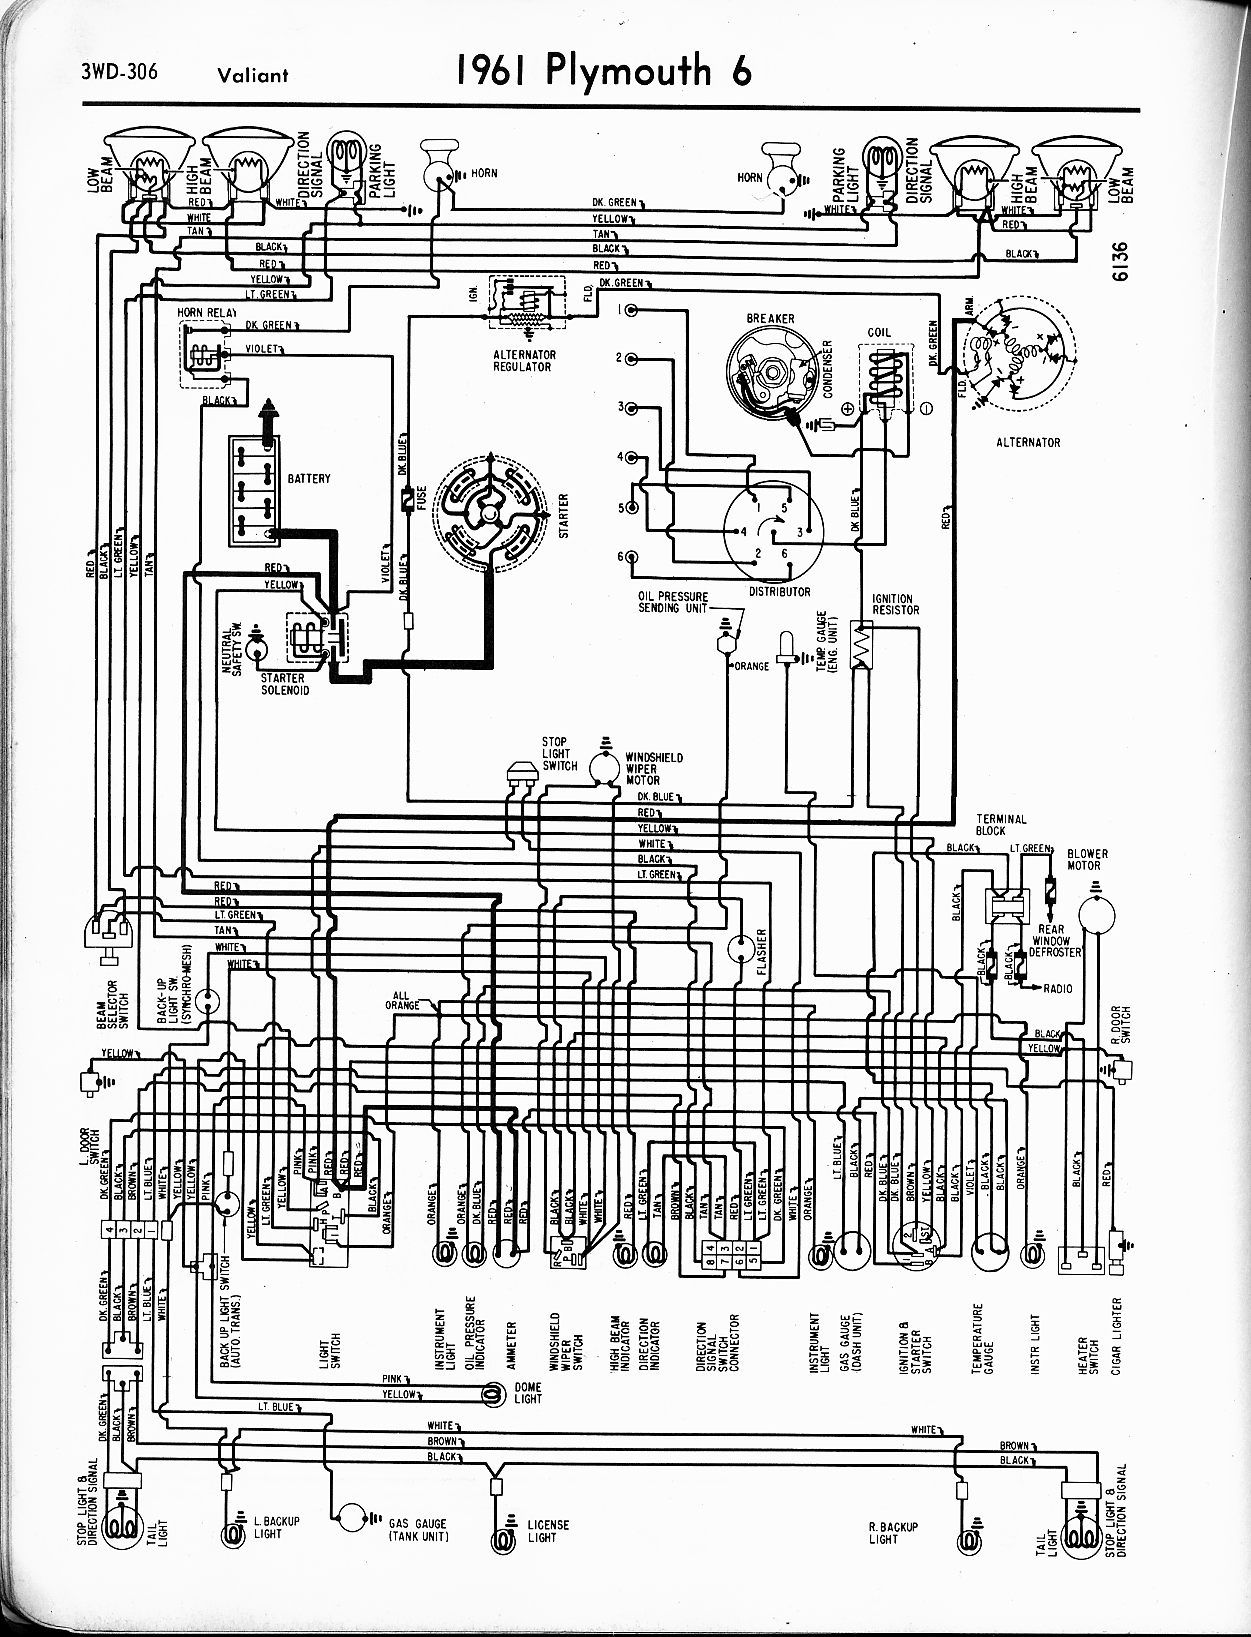 69 Plymouth Road Runner Wiring Harness Online Manuual Of 72 Diagram Diagrams Img Rh 10 Andreas Bolz De 68